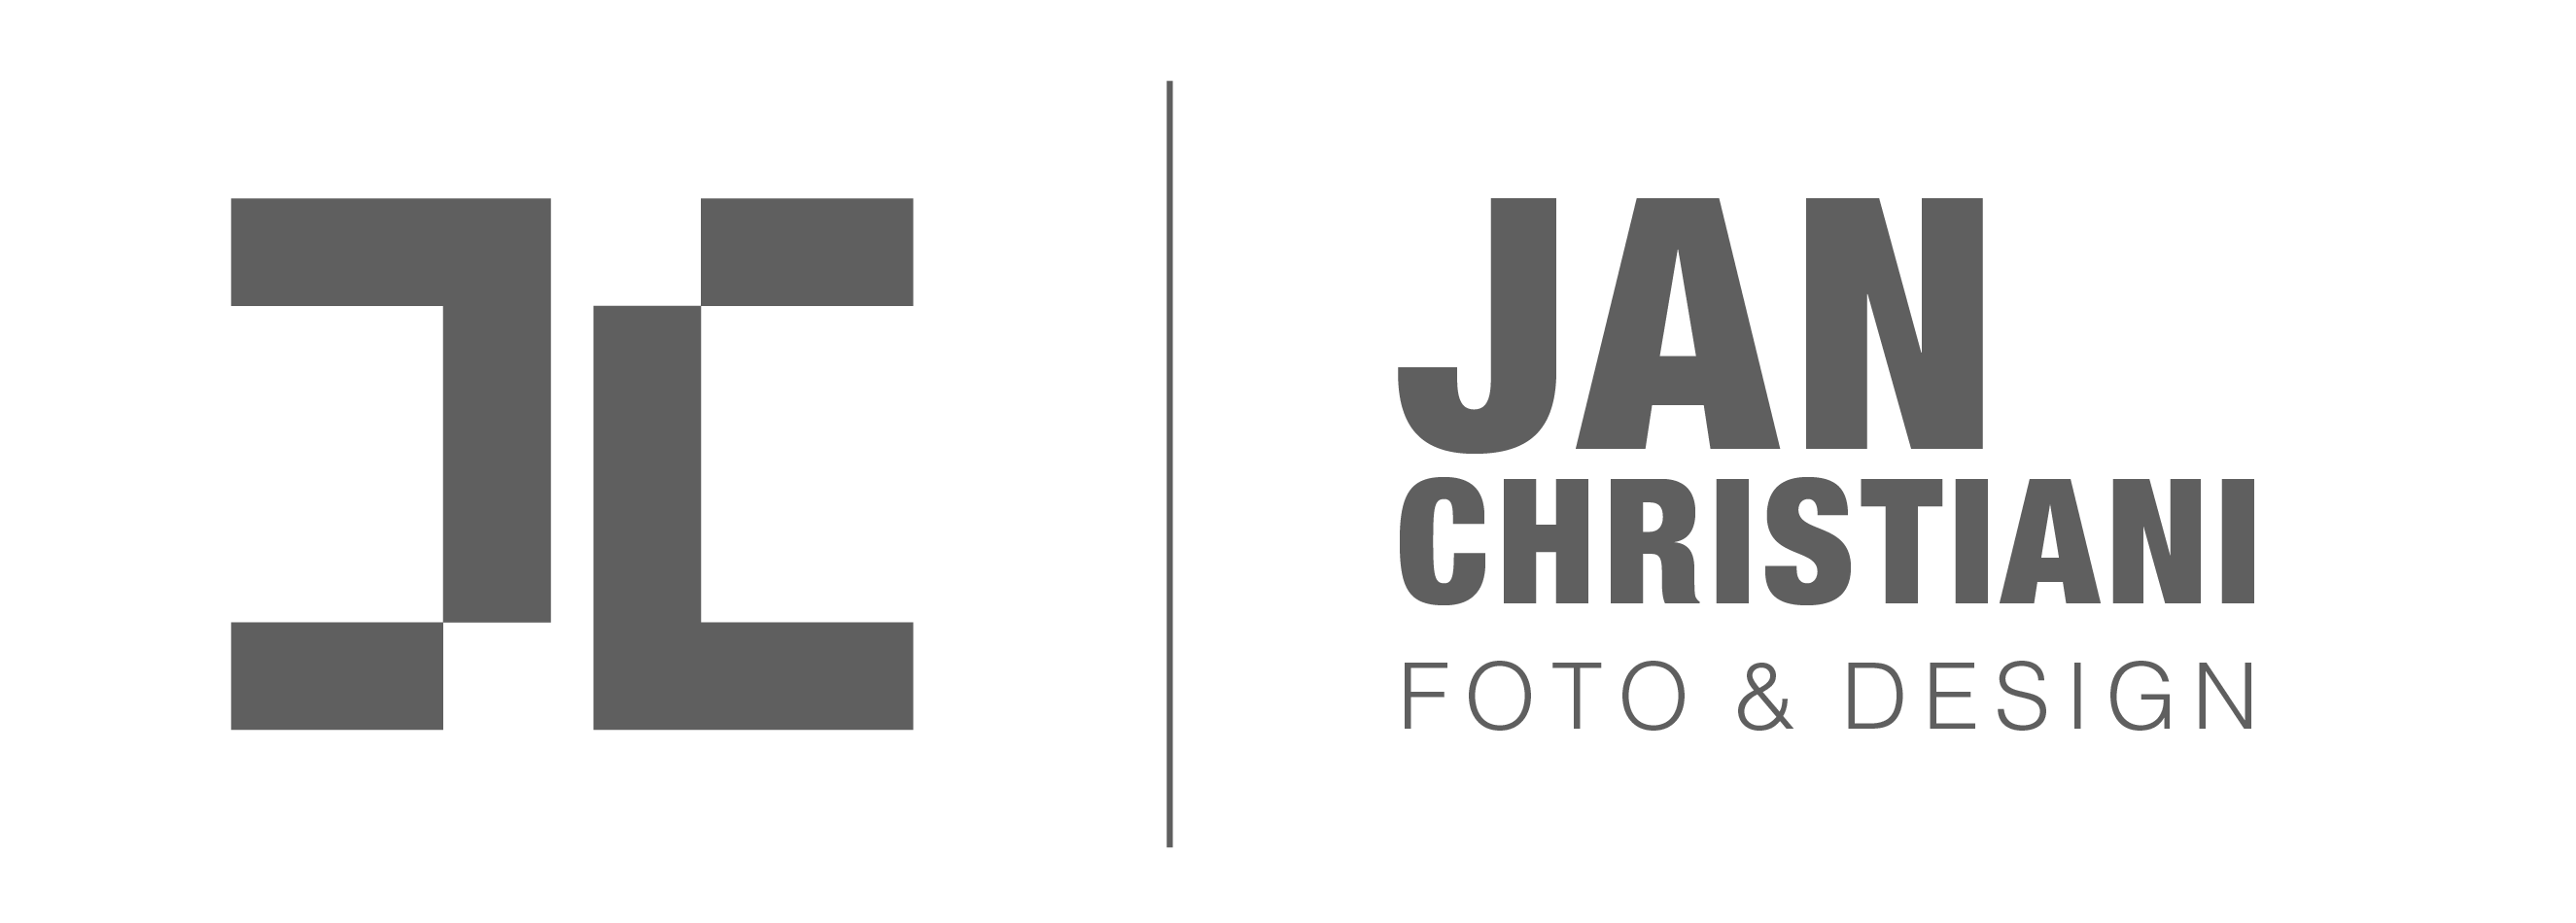 Jan Christiani Foto und Design - Logo